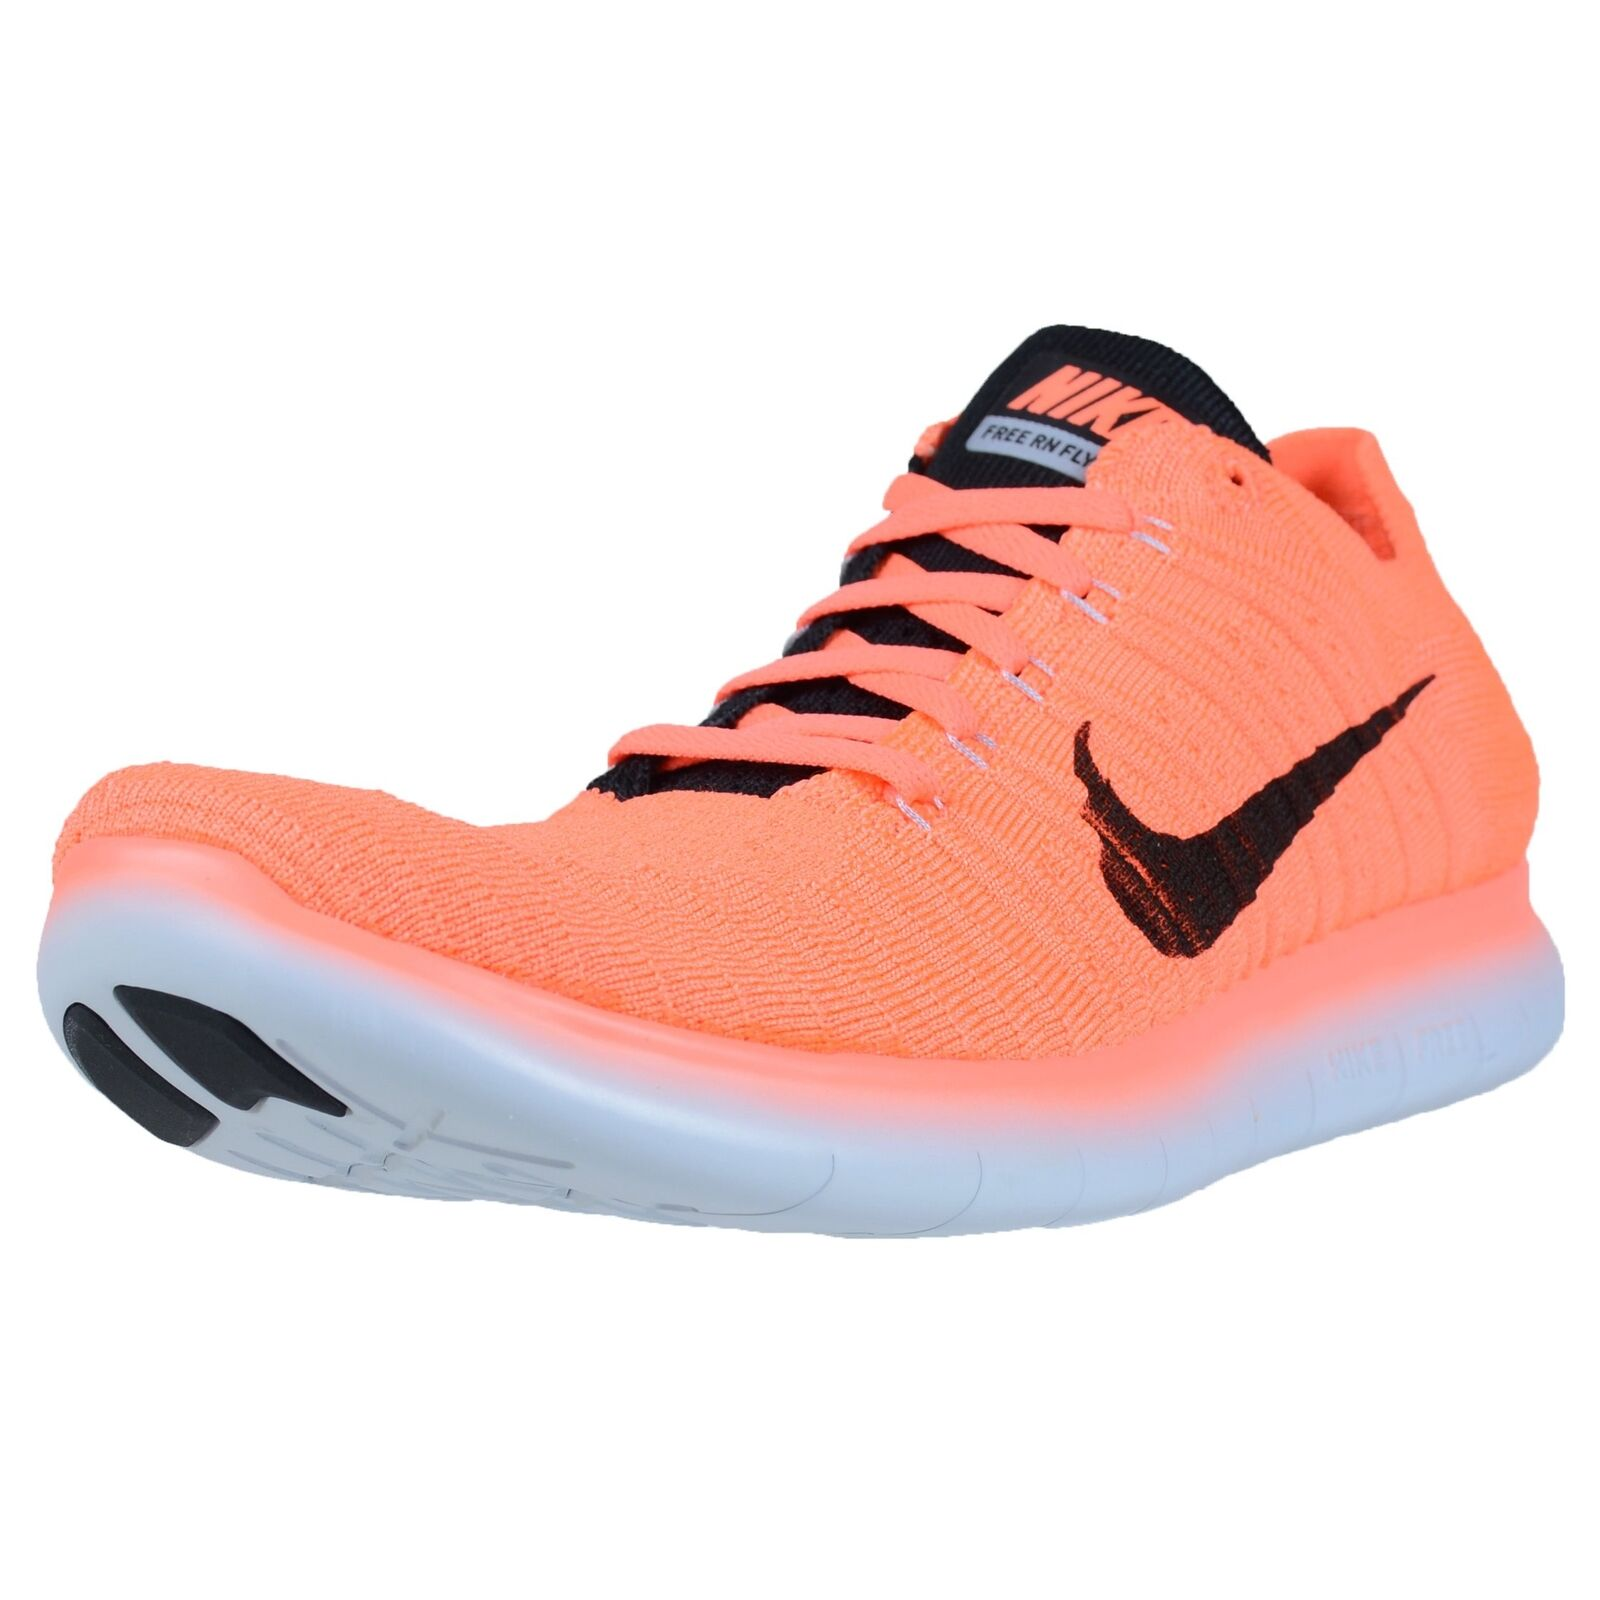 The most popular shoes for men and women NIKE FREE RN FLYKNIT BRIGHT MANGO BLACK WOLF GREY RUNNING SHOE 10.5  831069 801